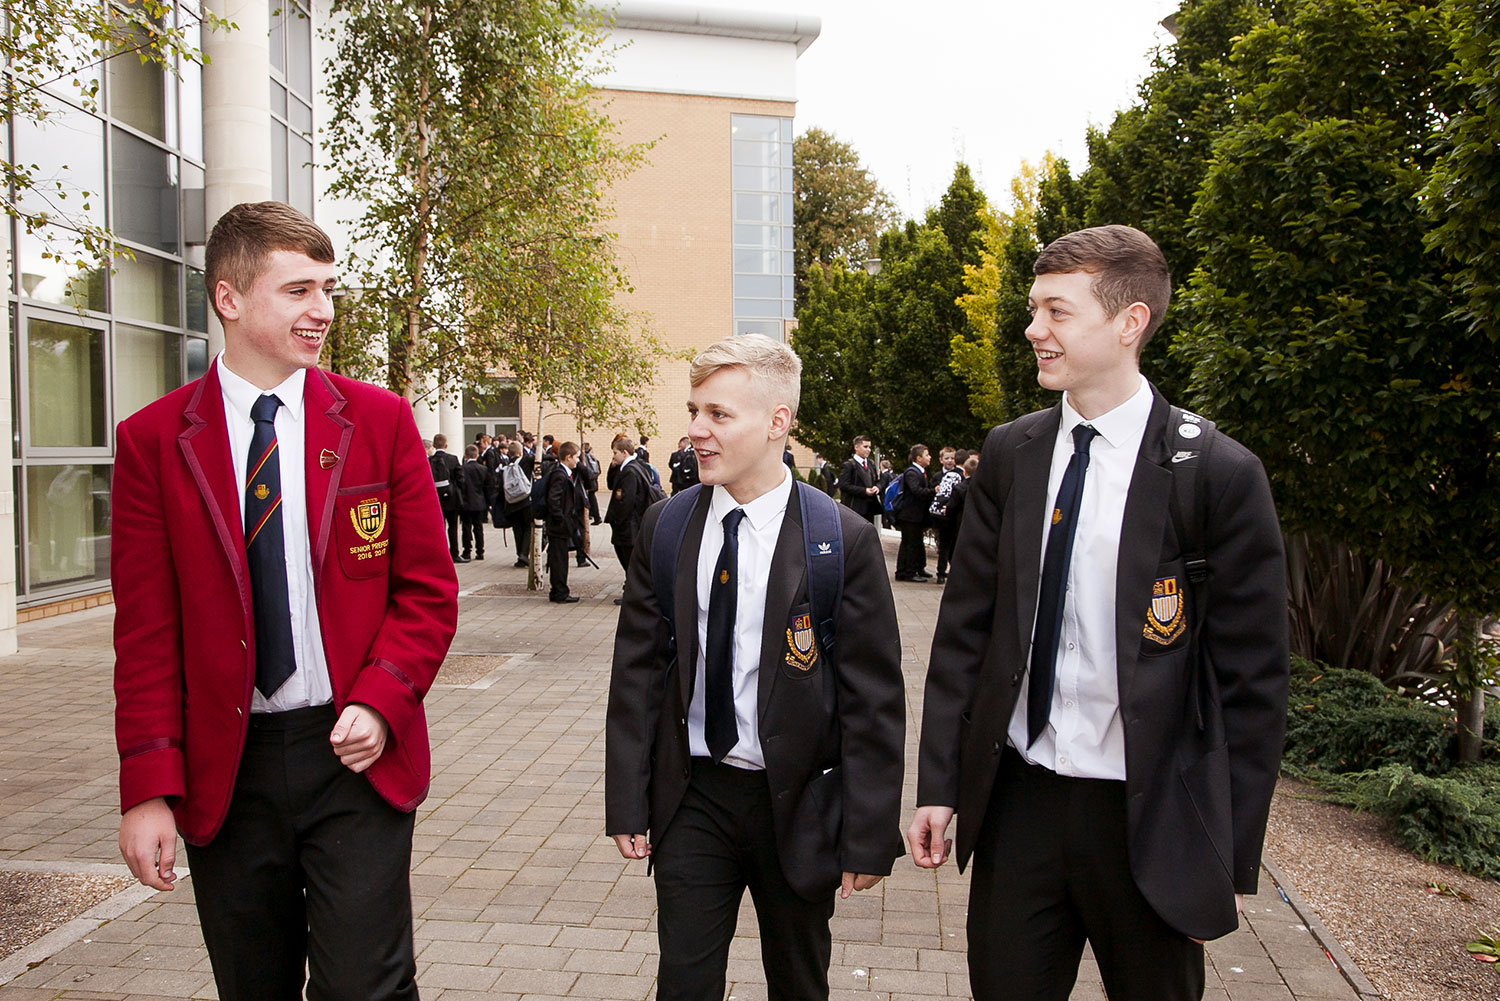 Happy-Pupils-Outside-1264.jpg